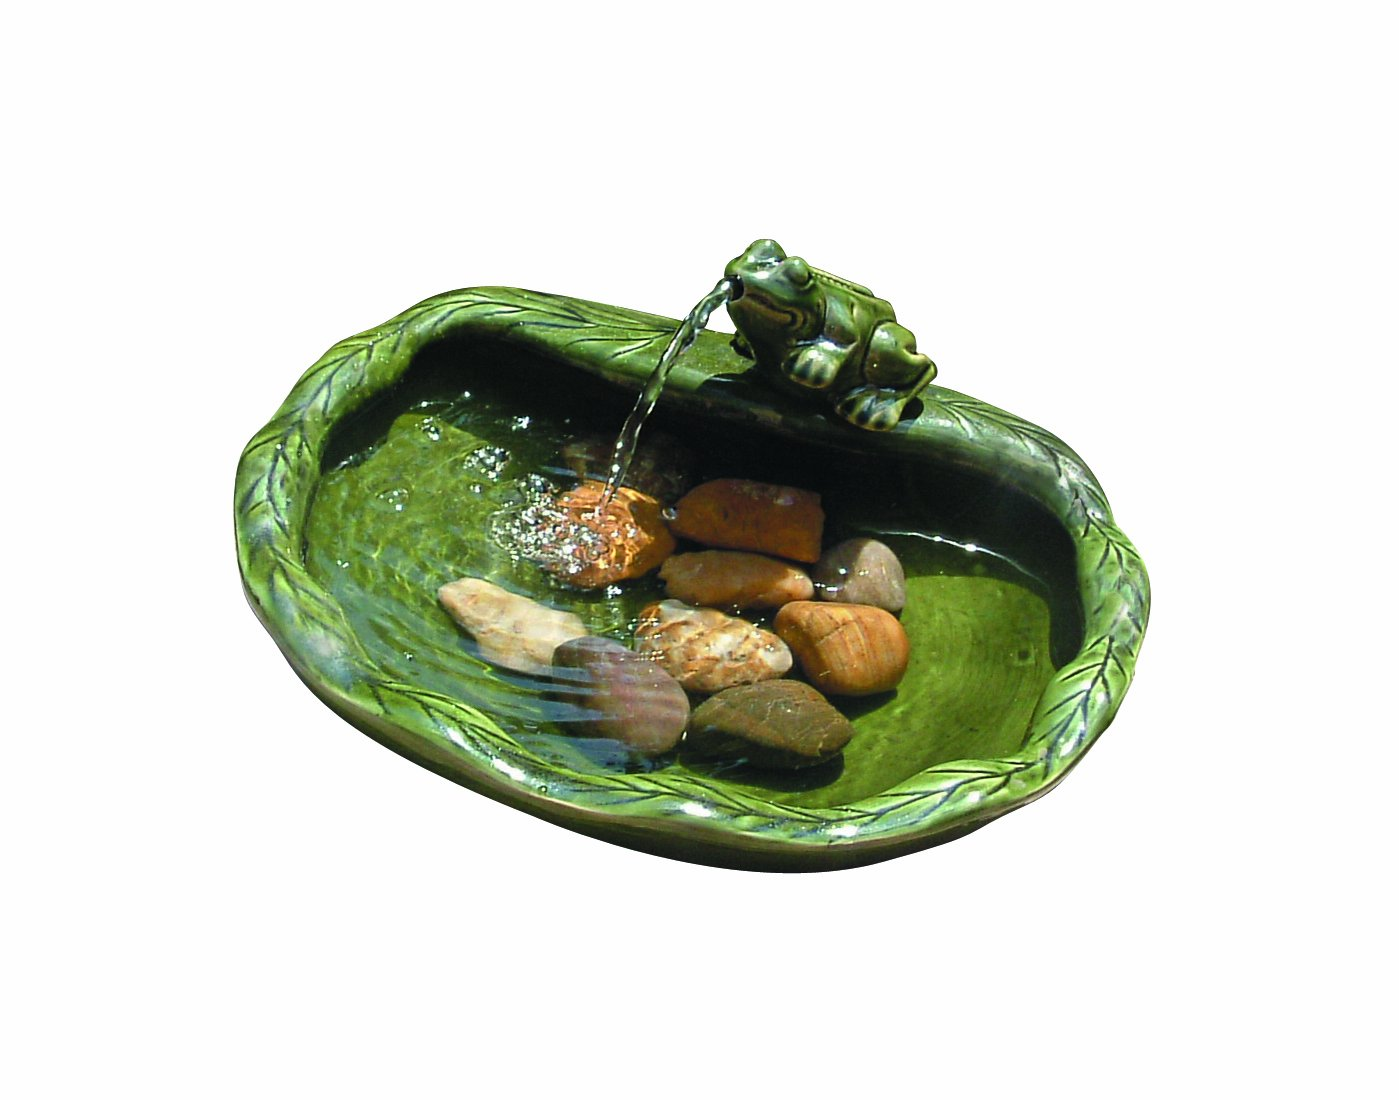 Smart Solar 22300R01 Solar Powered Ceramic Frog Water Feature, Green Glazed Ceramic, Powered By An Included Solar Panel That Operates An Integral Low Voltage Pump With Filter by STI Group (Image #1)